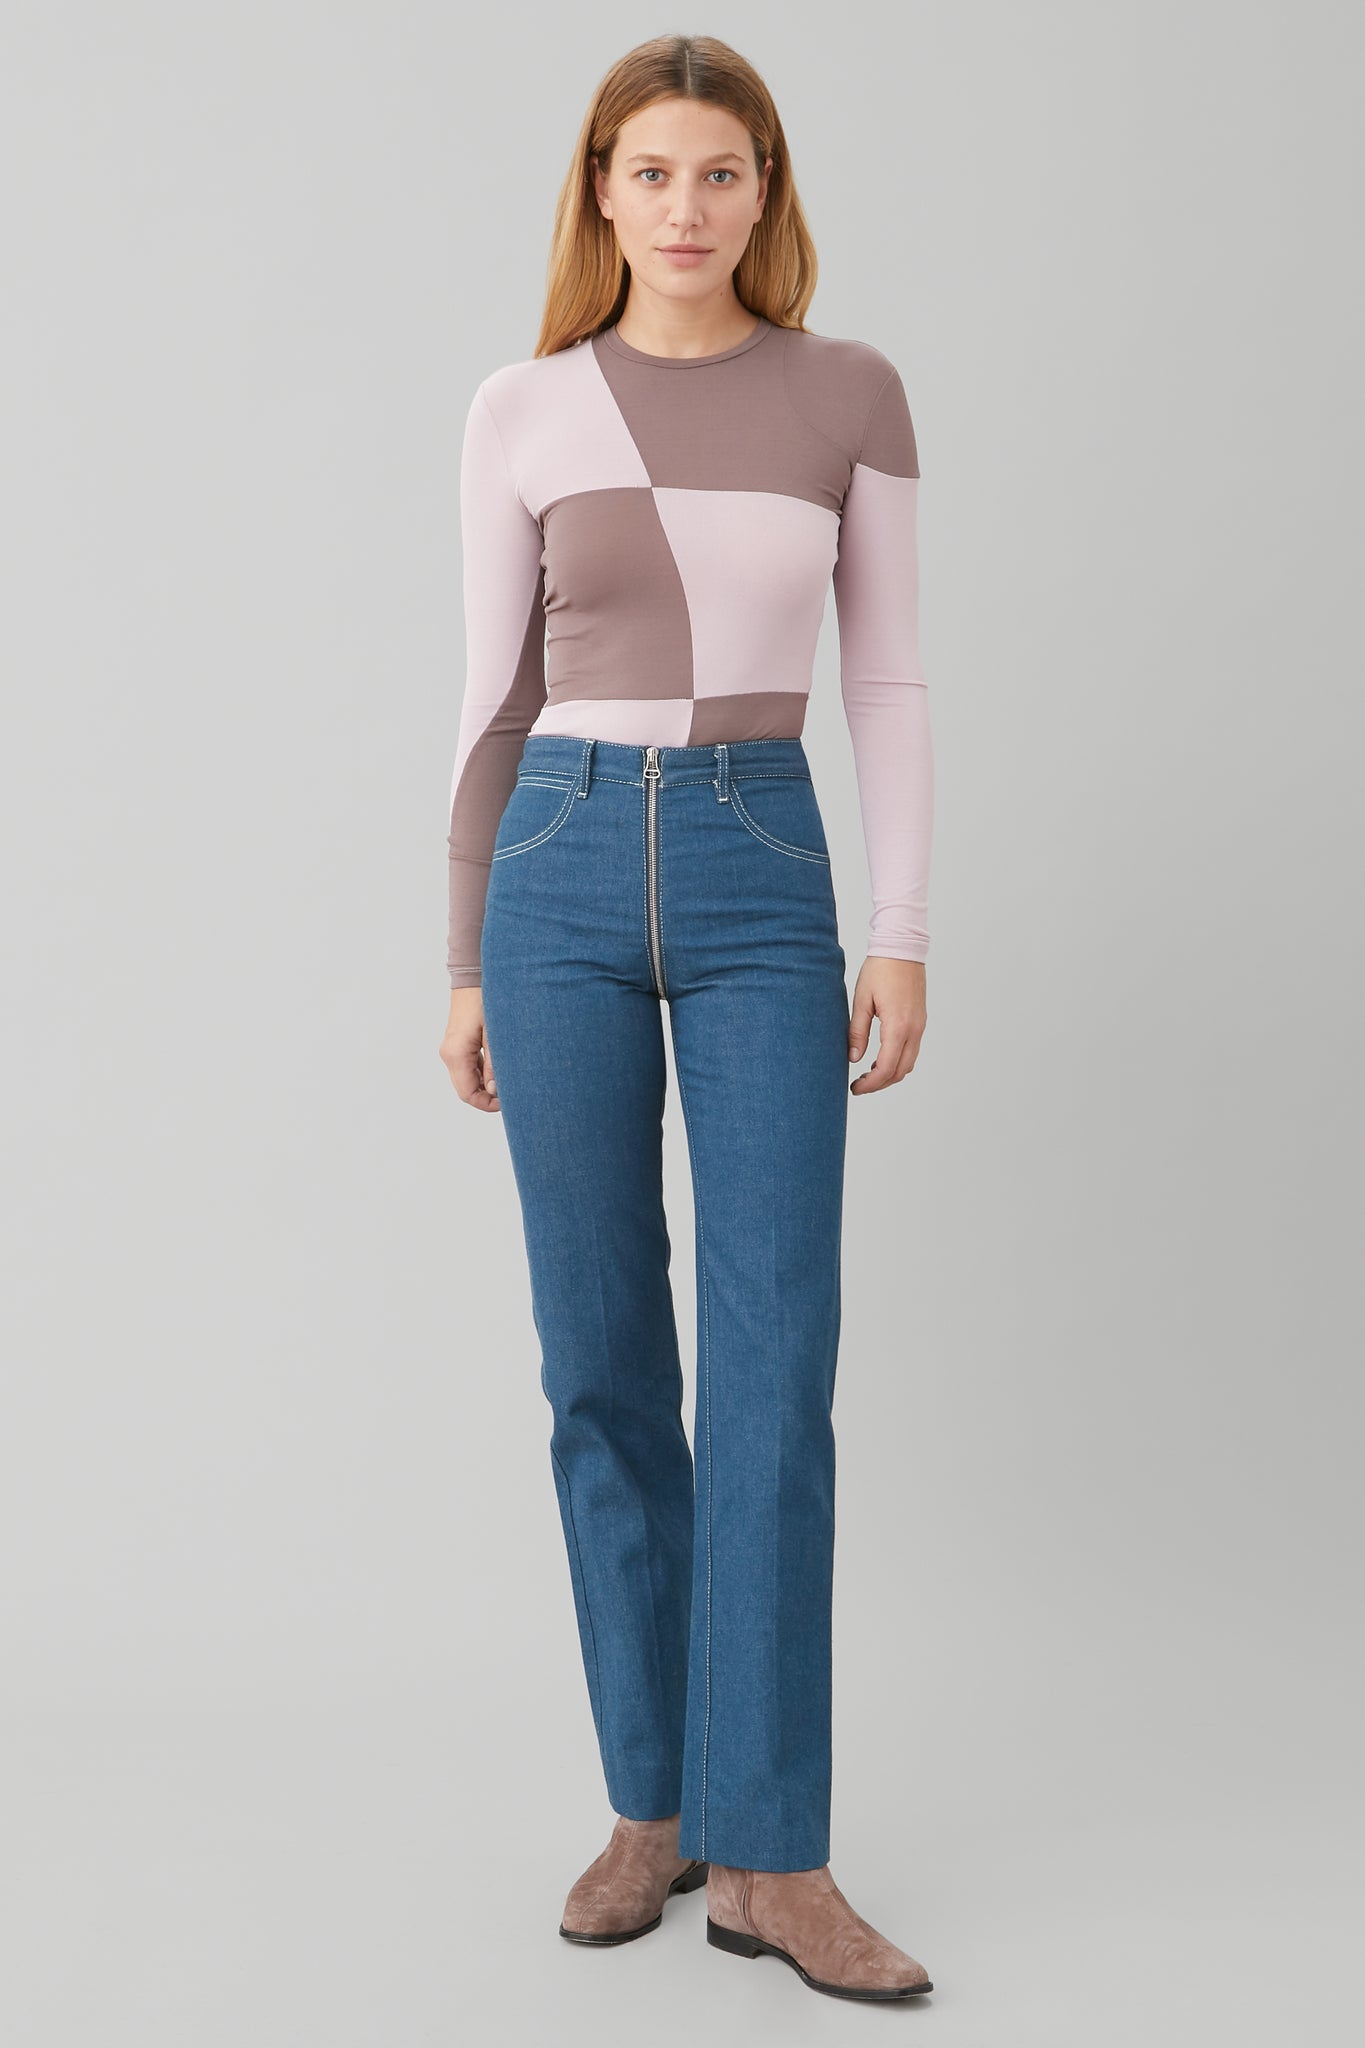 LONG SLV PATCHWORK TOP IN LILAC CREPE